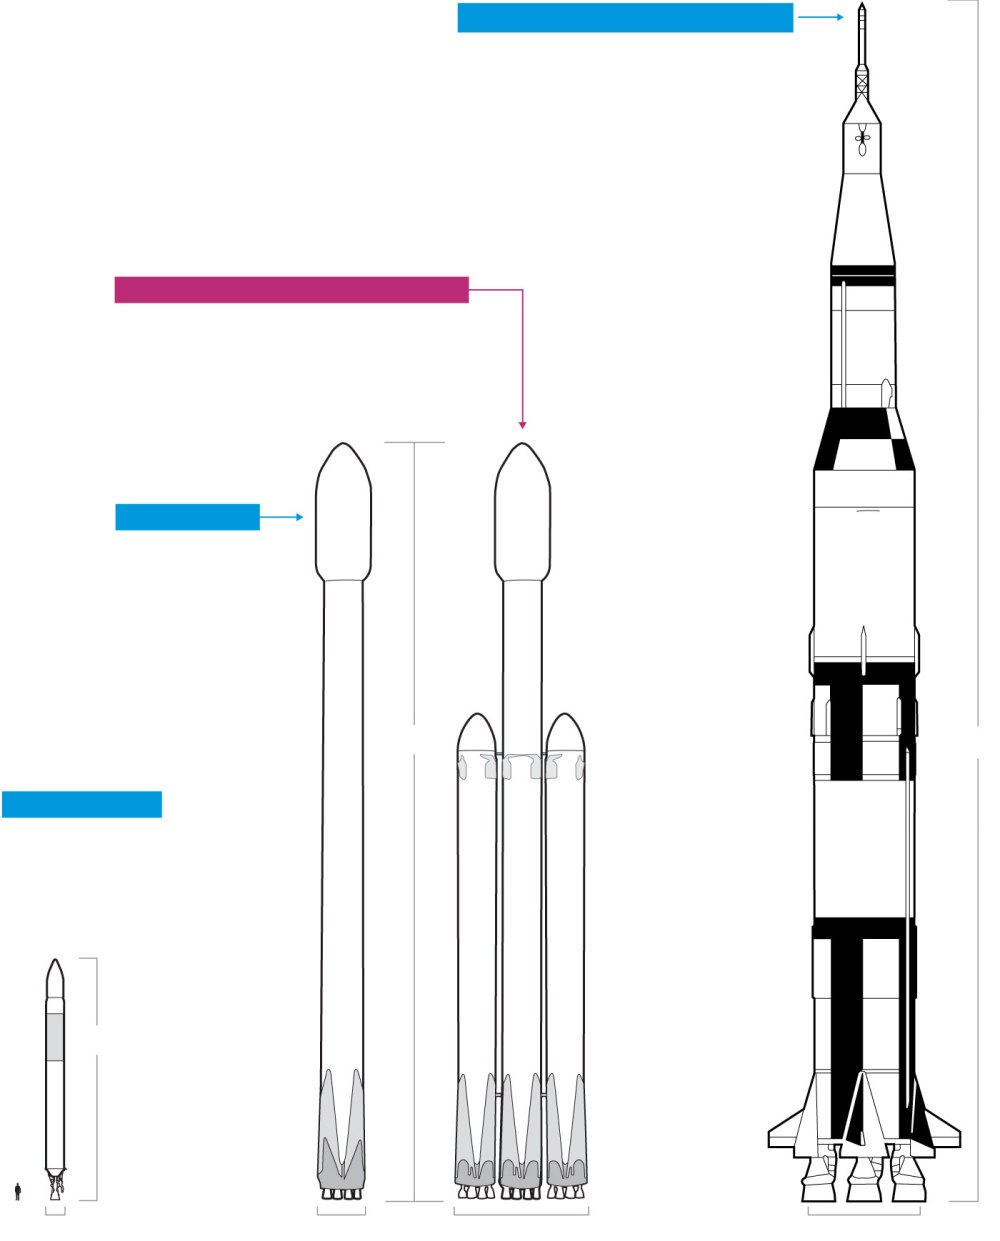 medium resolution of spacex s new falcon heavy is more powerful than any rocket currently in use but still not as large as the saturn v that launched astronauts to the moon